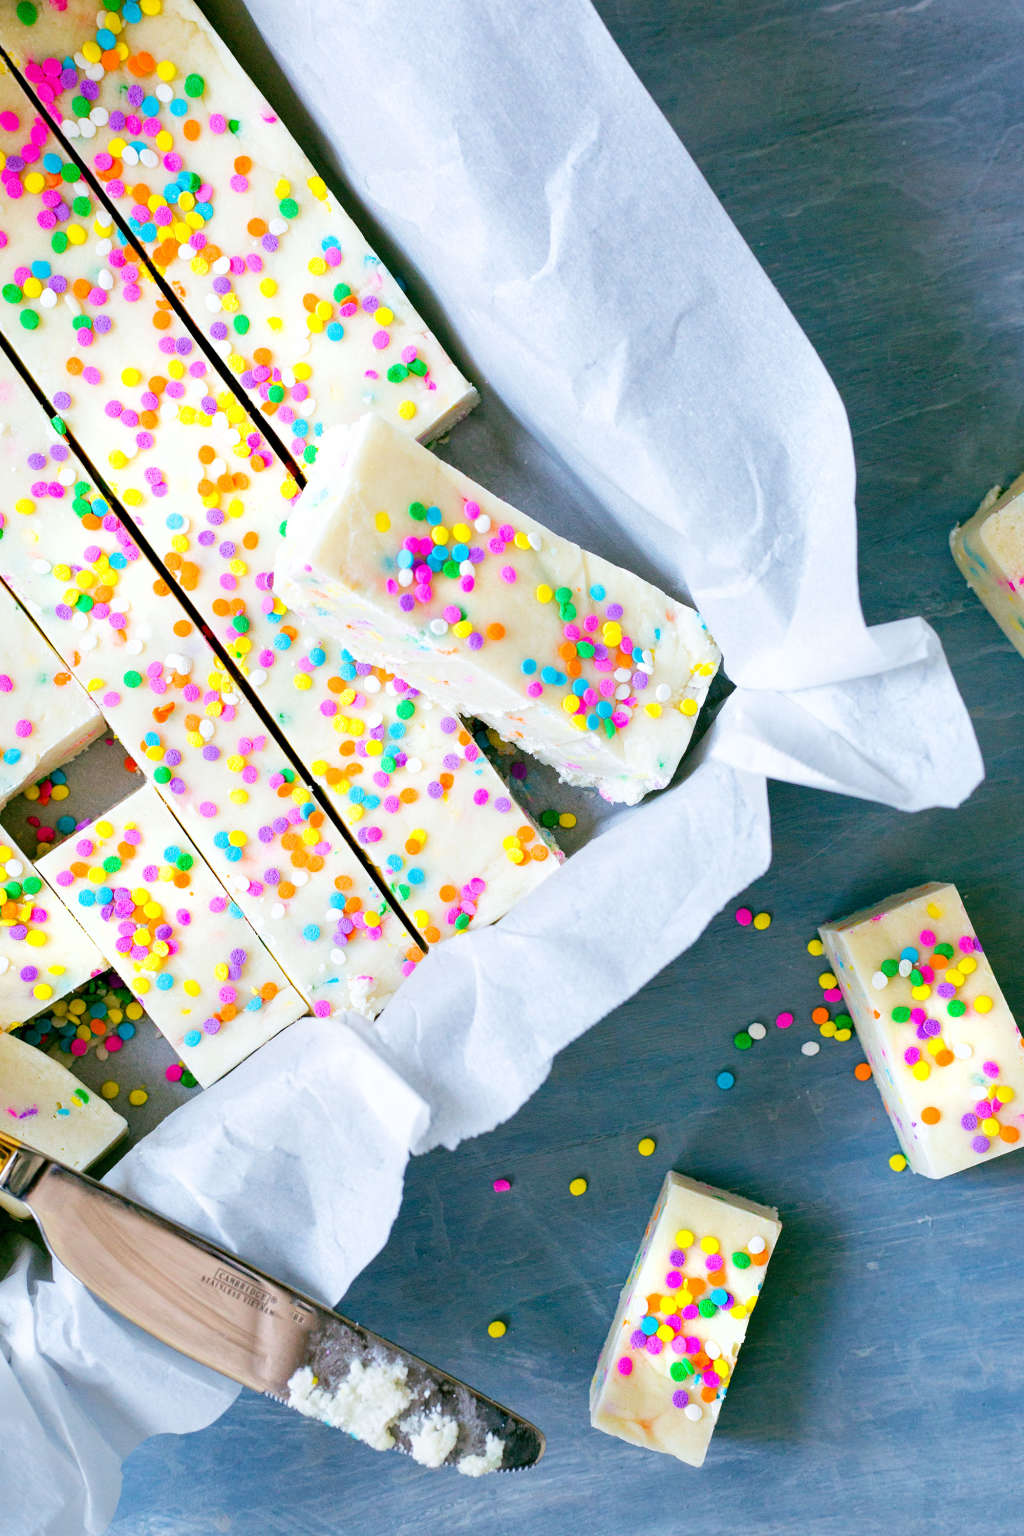 3 Unexpected Ways to Use a Box of Cake Mix